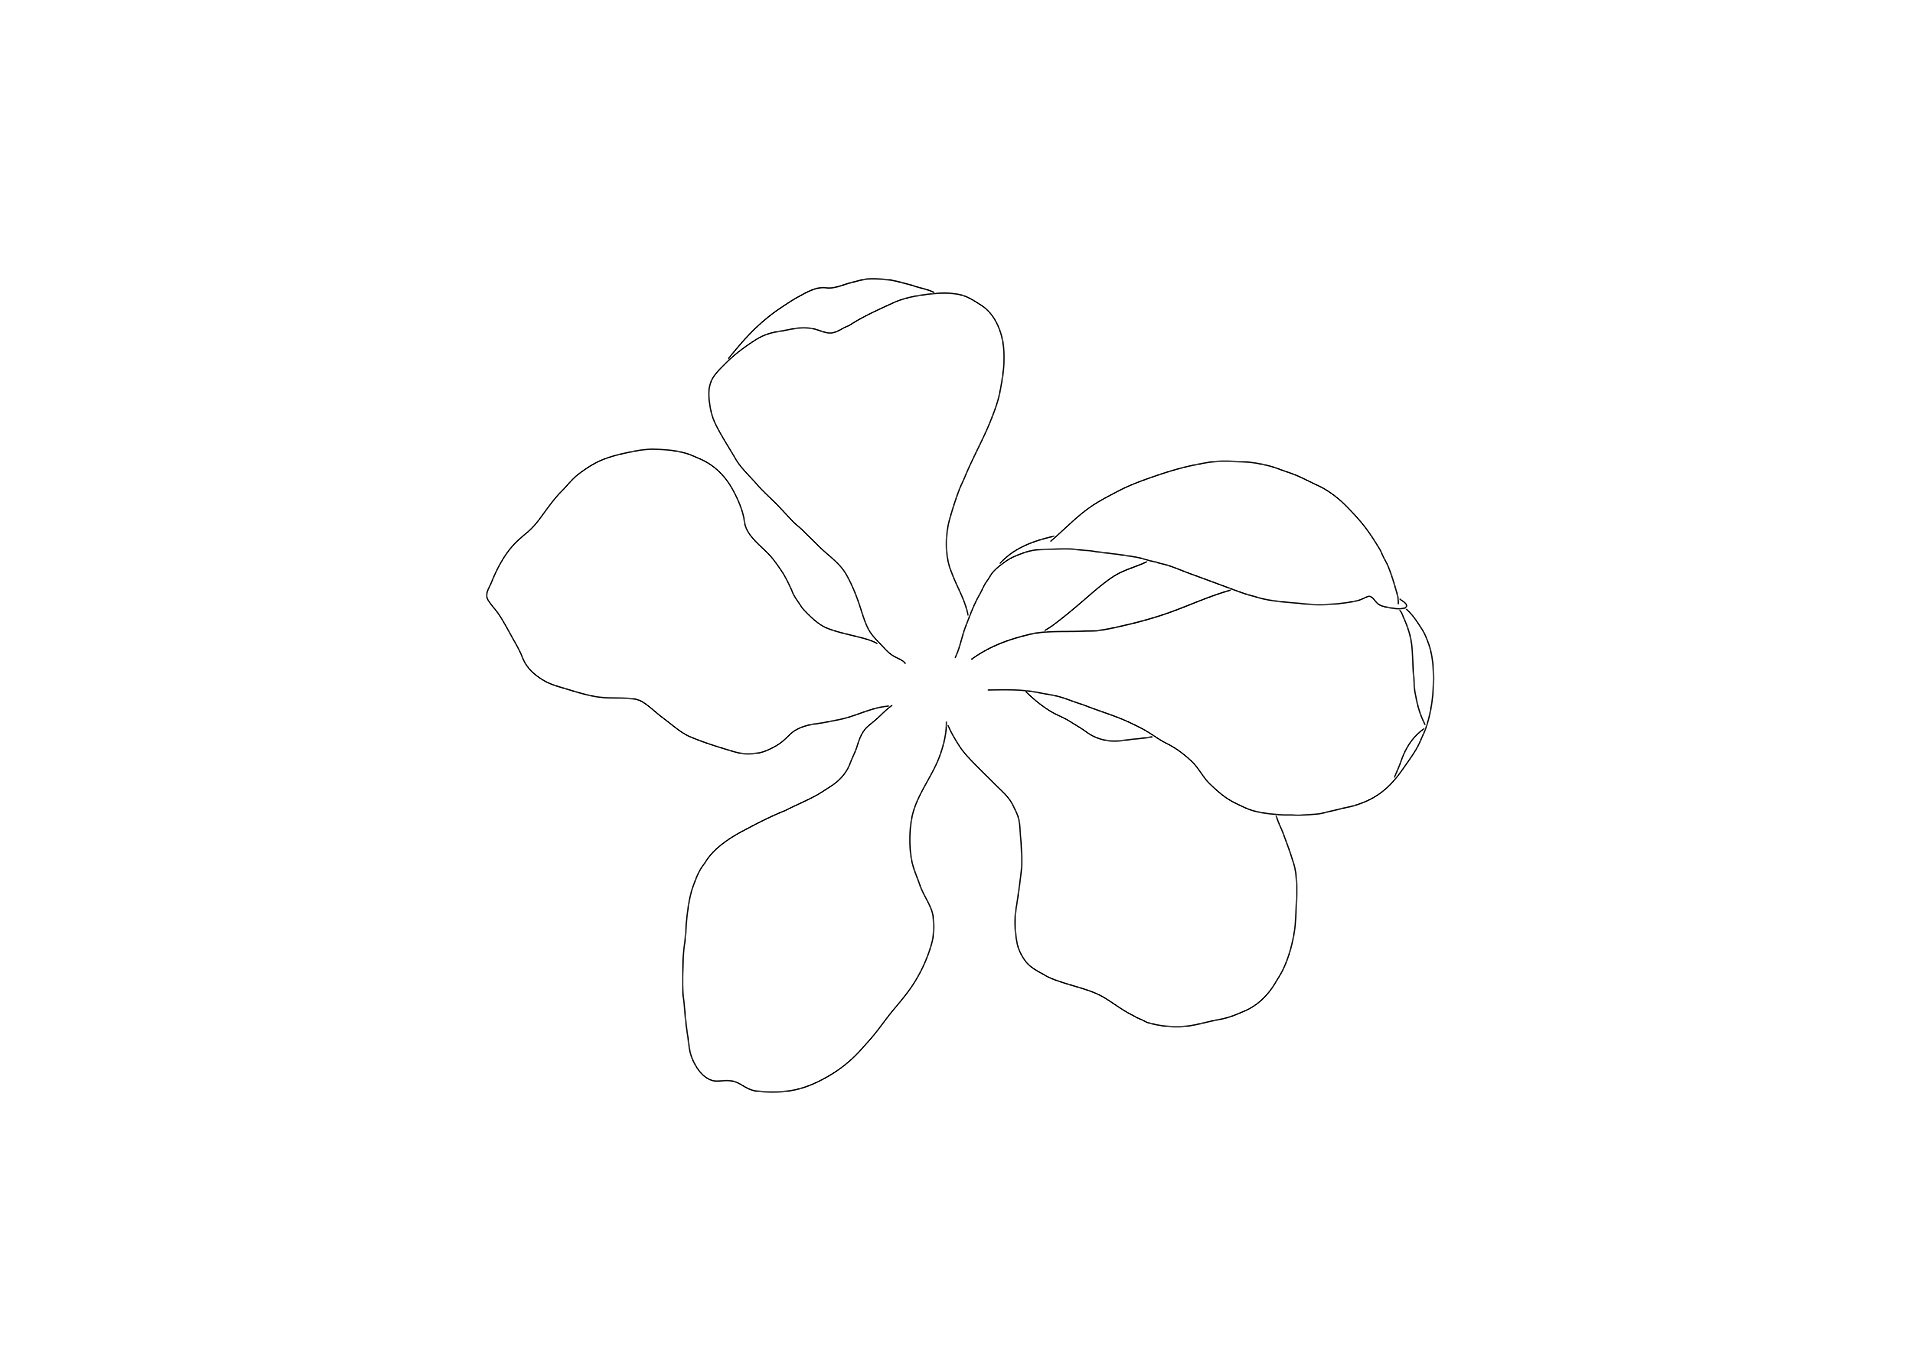 Magnolia Drawing 2, Flower  4